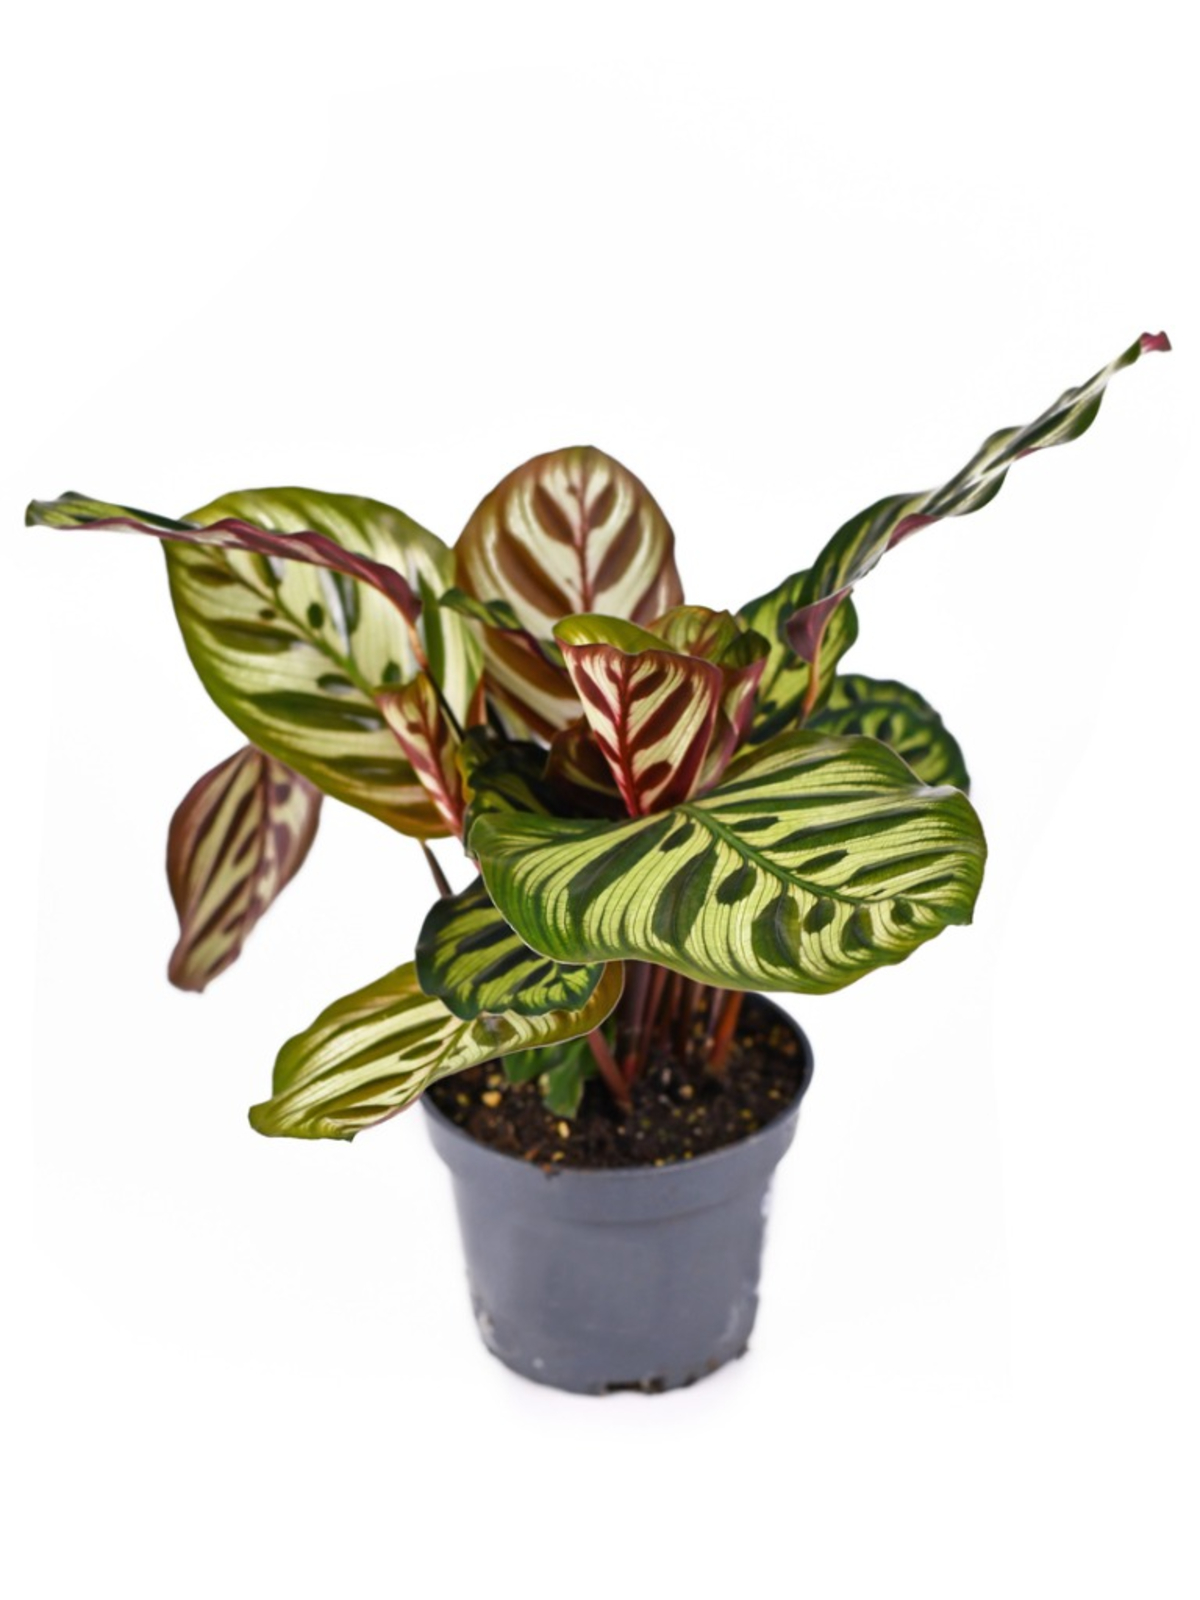 Calathea makoyana (peacock Plant) Indoor Plants Shrubs